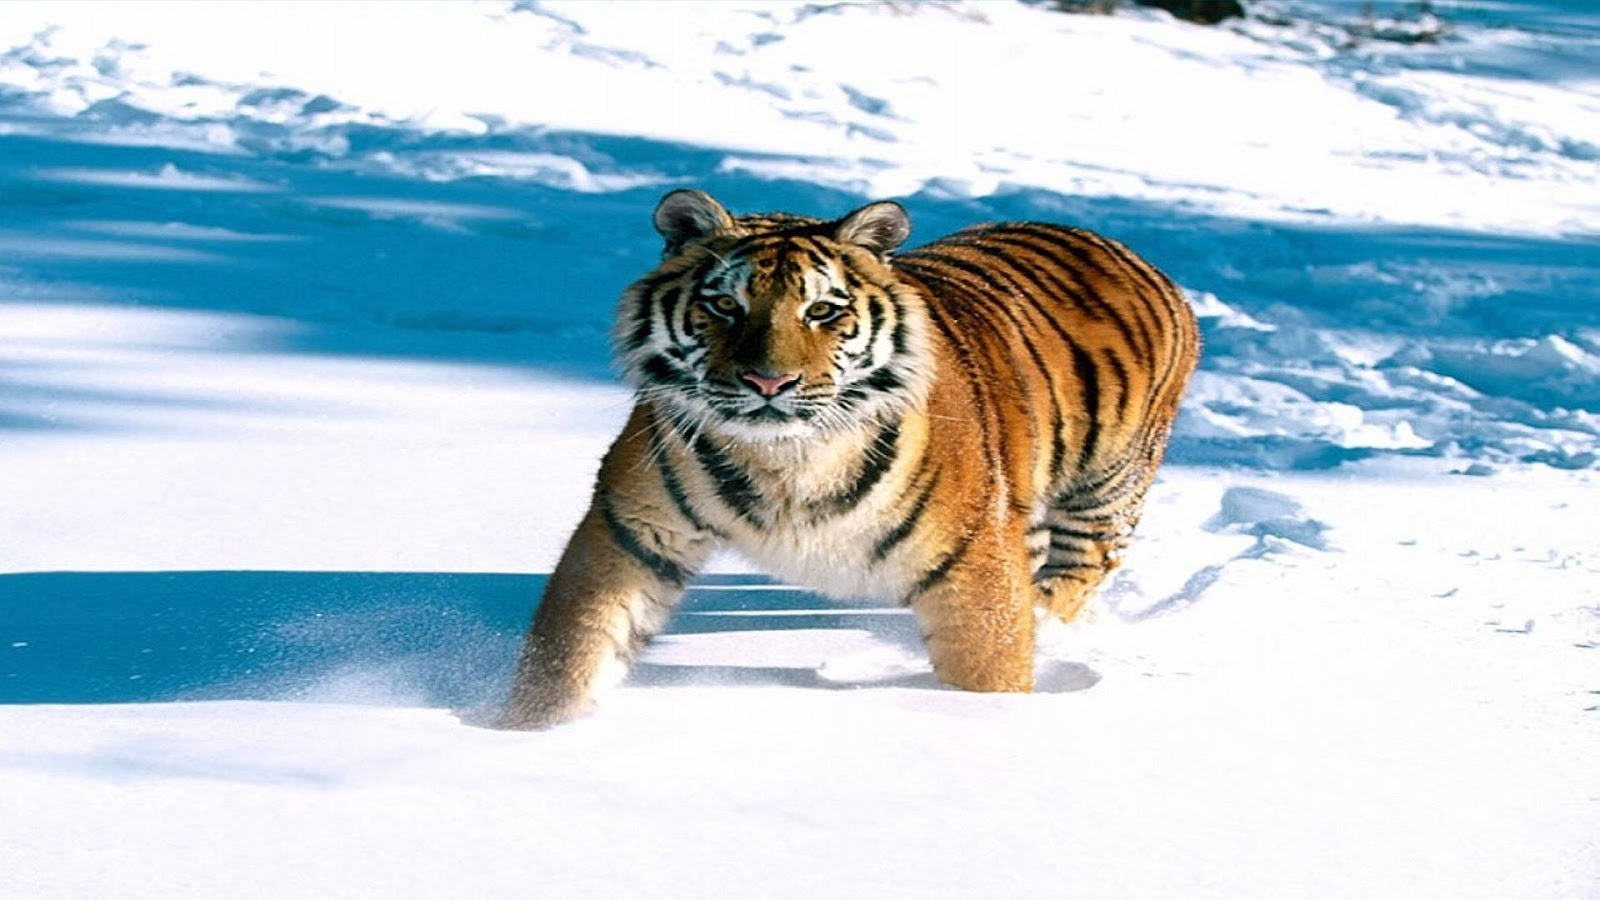 S Name Wallpaper Hd Download Top 35 Most Beautiful Tiger Wallpapers